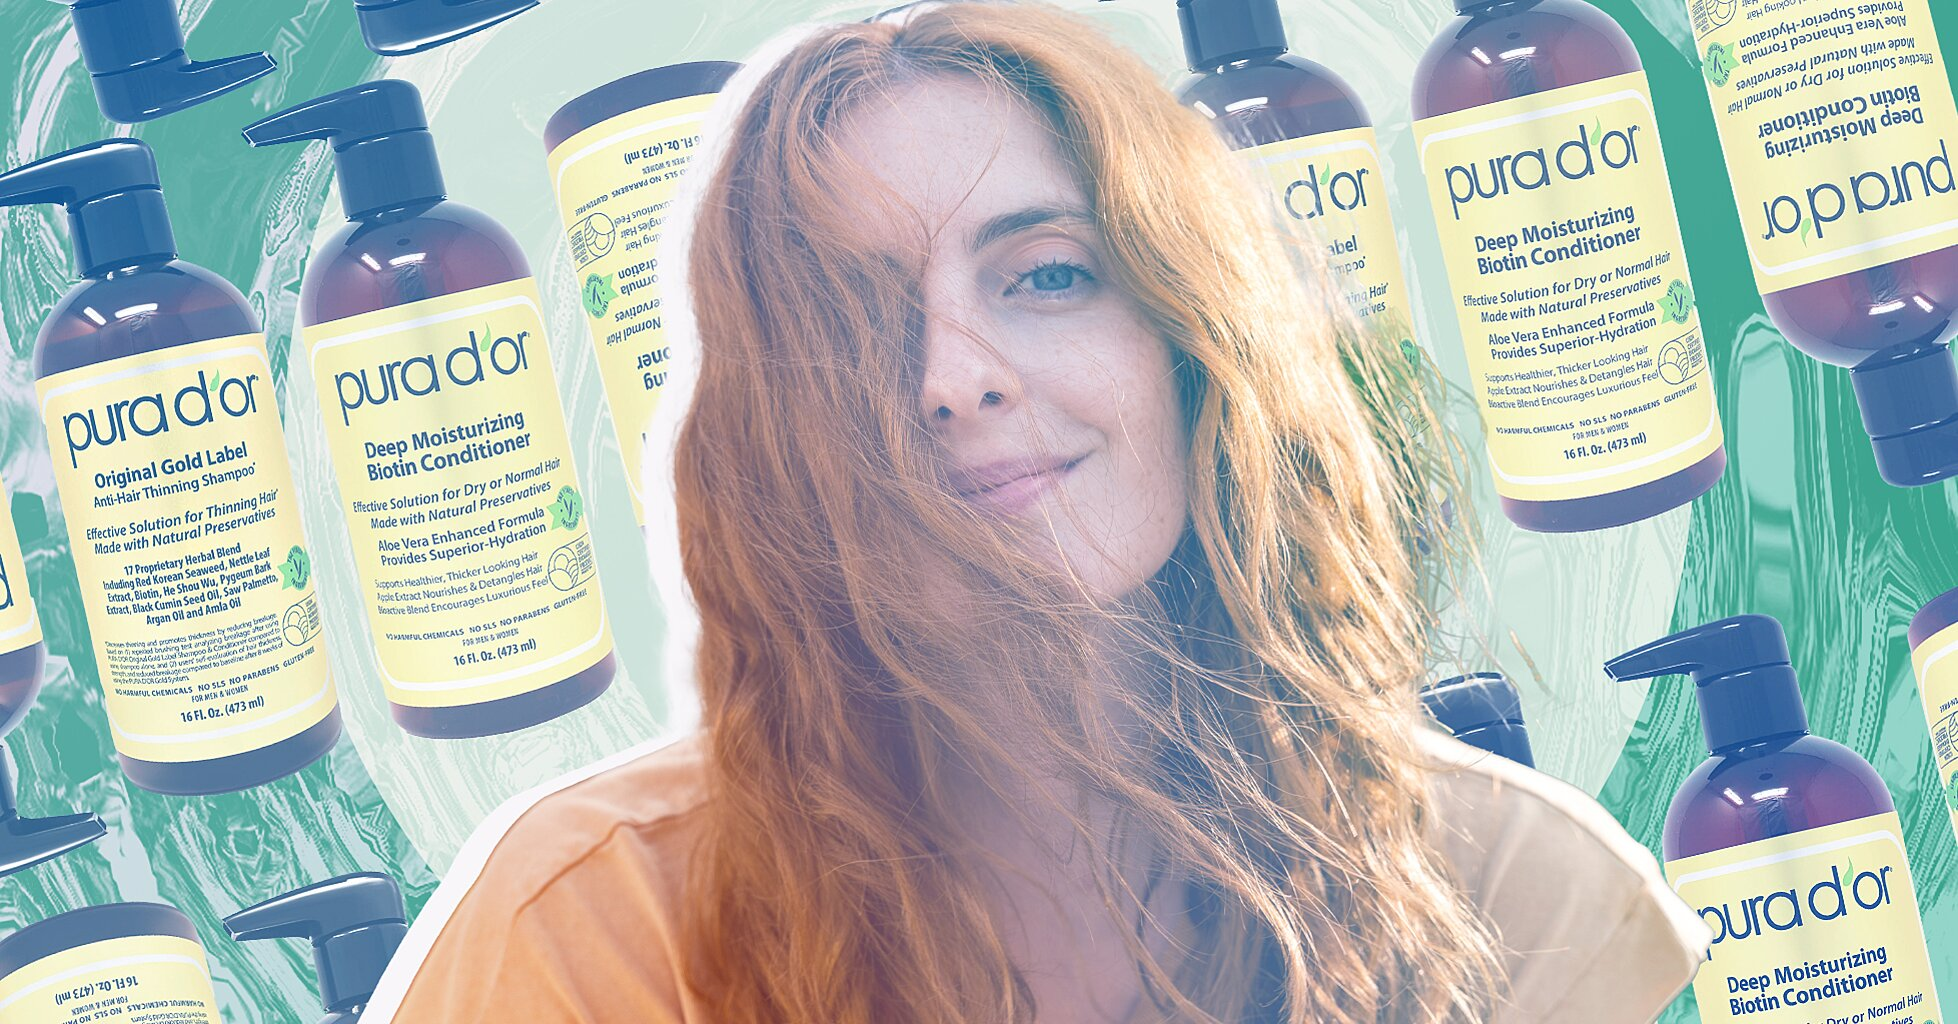 Nearly 10,000 People Swear by This Anti-Thinning Shampoo and Conditioner for Their Healthiest, Fullest Hair Ever—and It's 33% Off